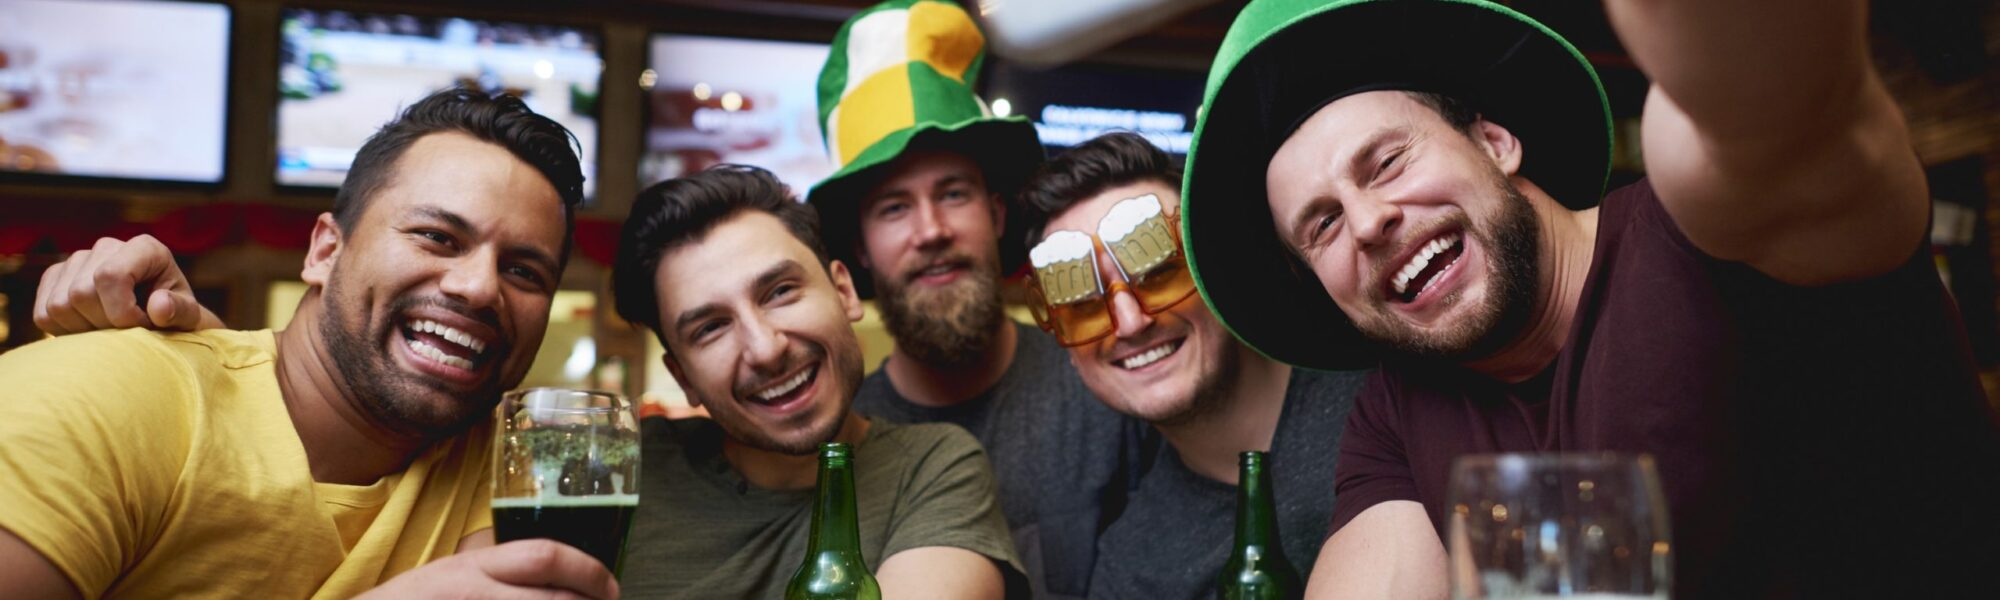 Friends celebrating St. Patrick's Day - gpointstudio